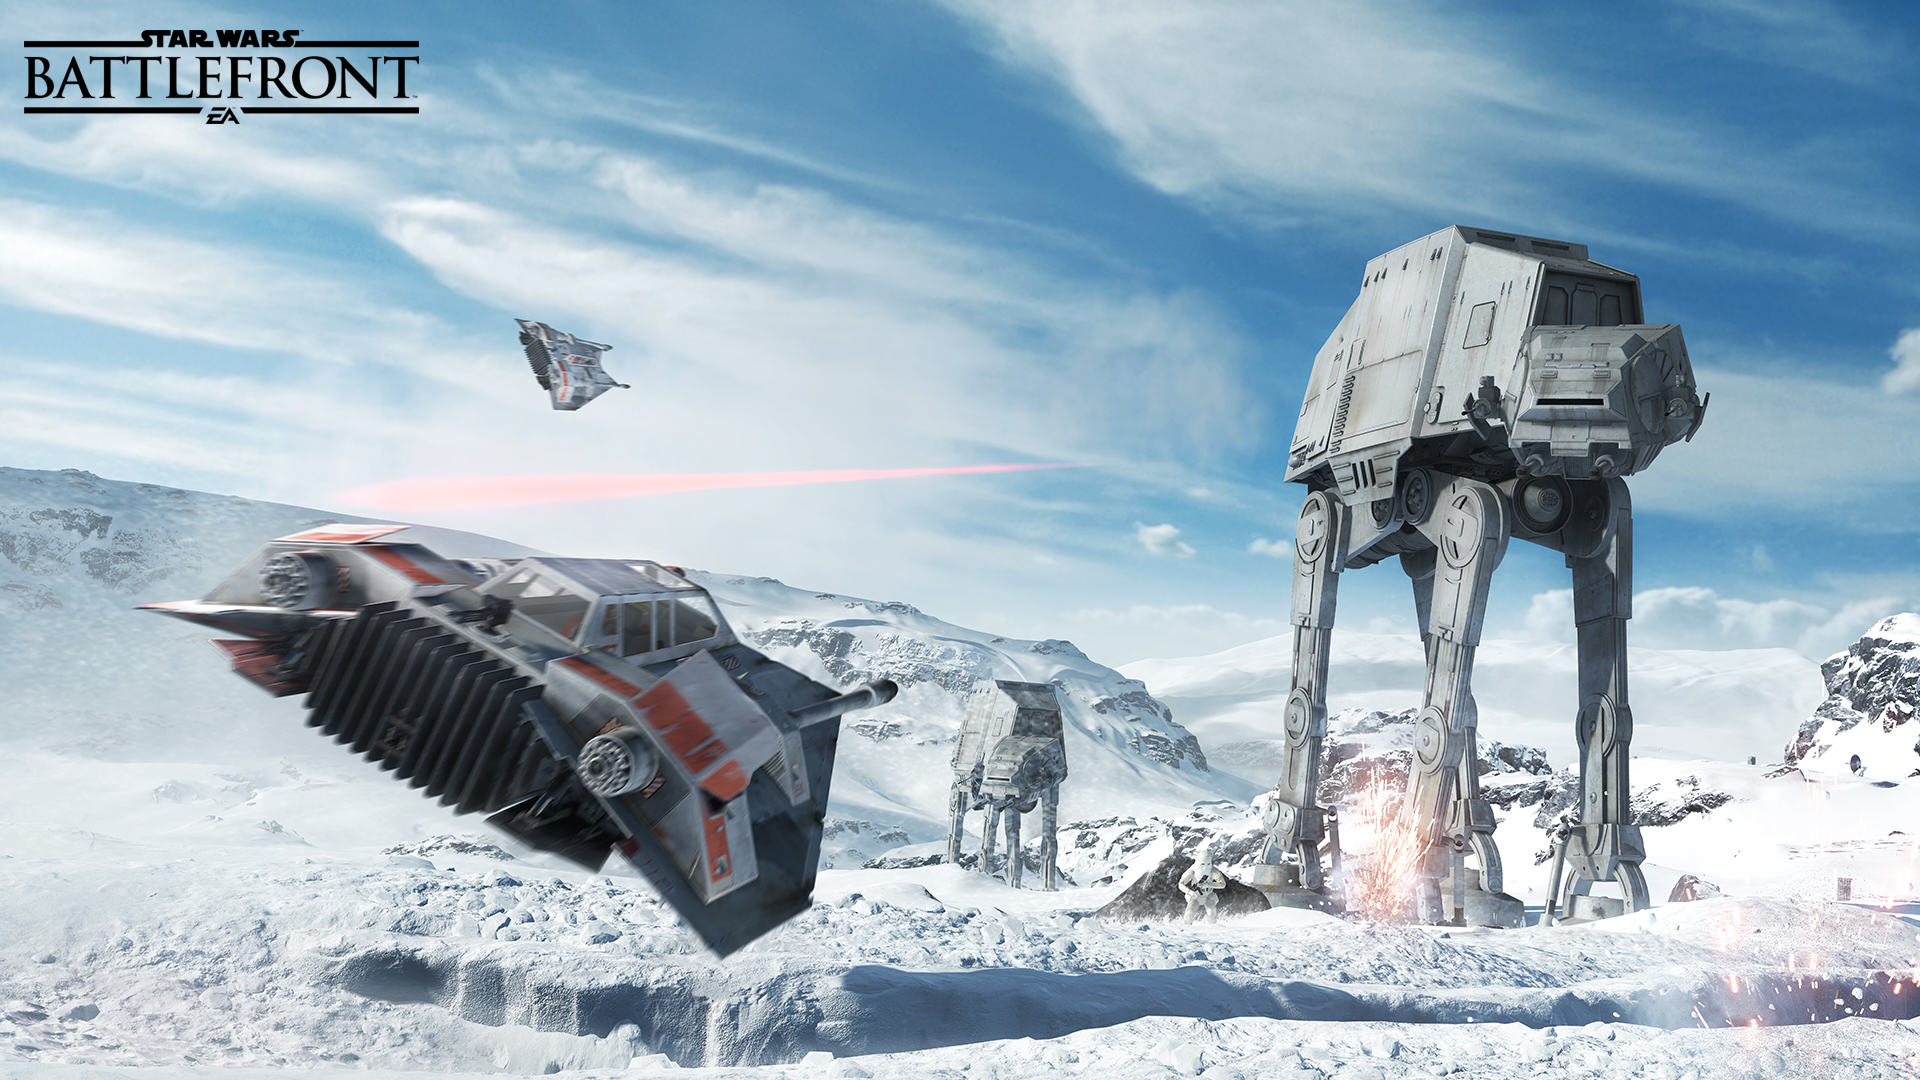 UNILAD Star Wars Battlefront  4 17 A6 5 Things You Should Know Before The Star Wars Battlefront Beta